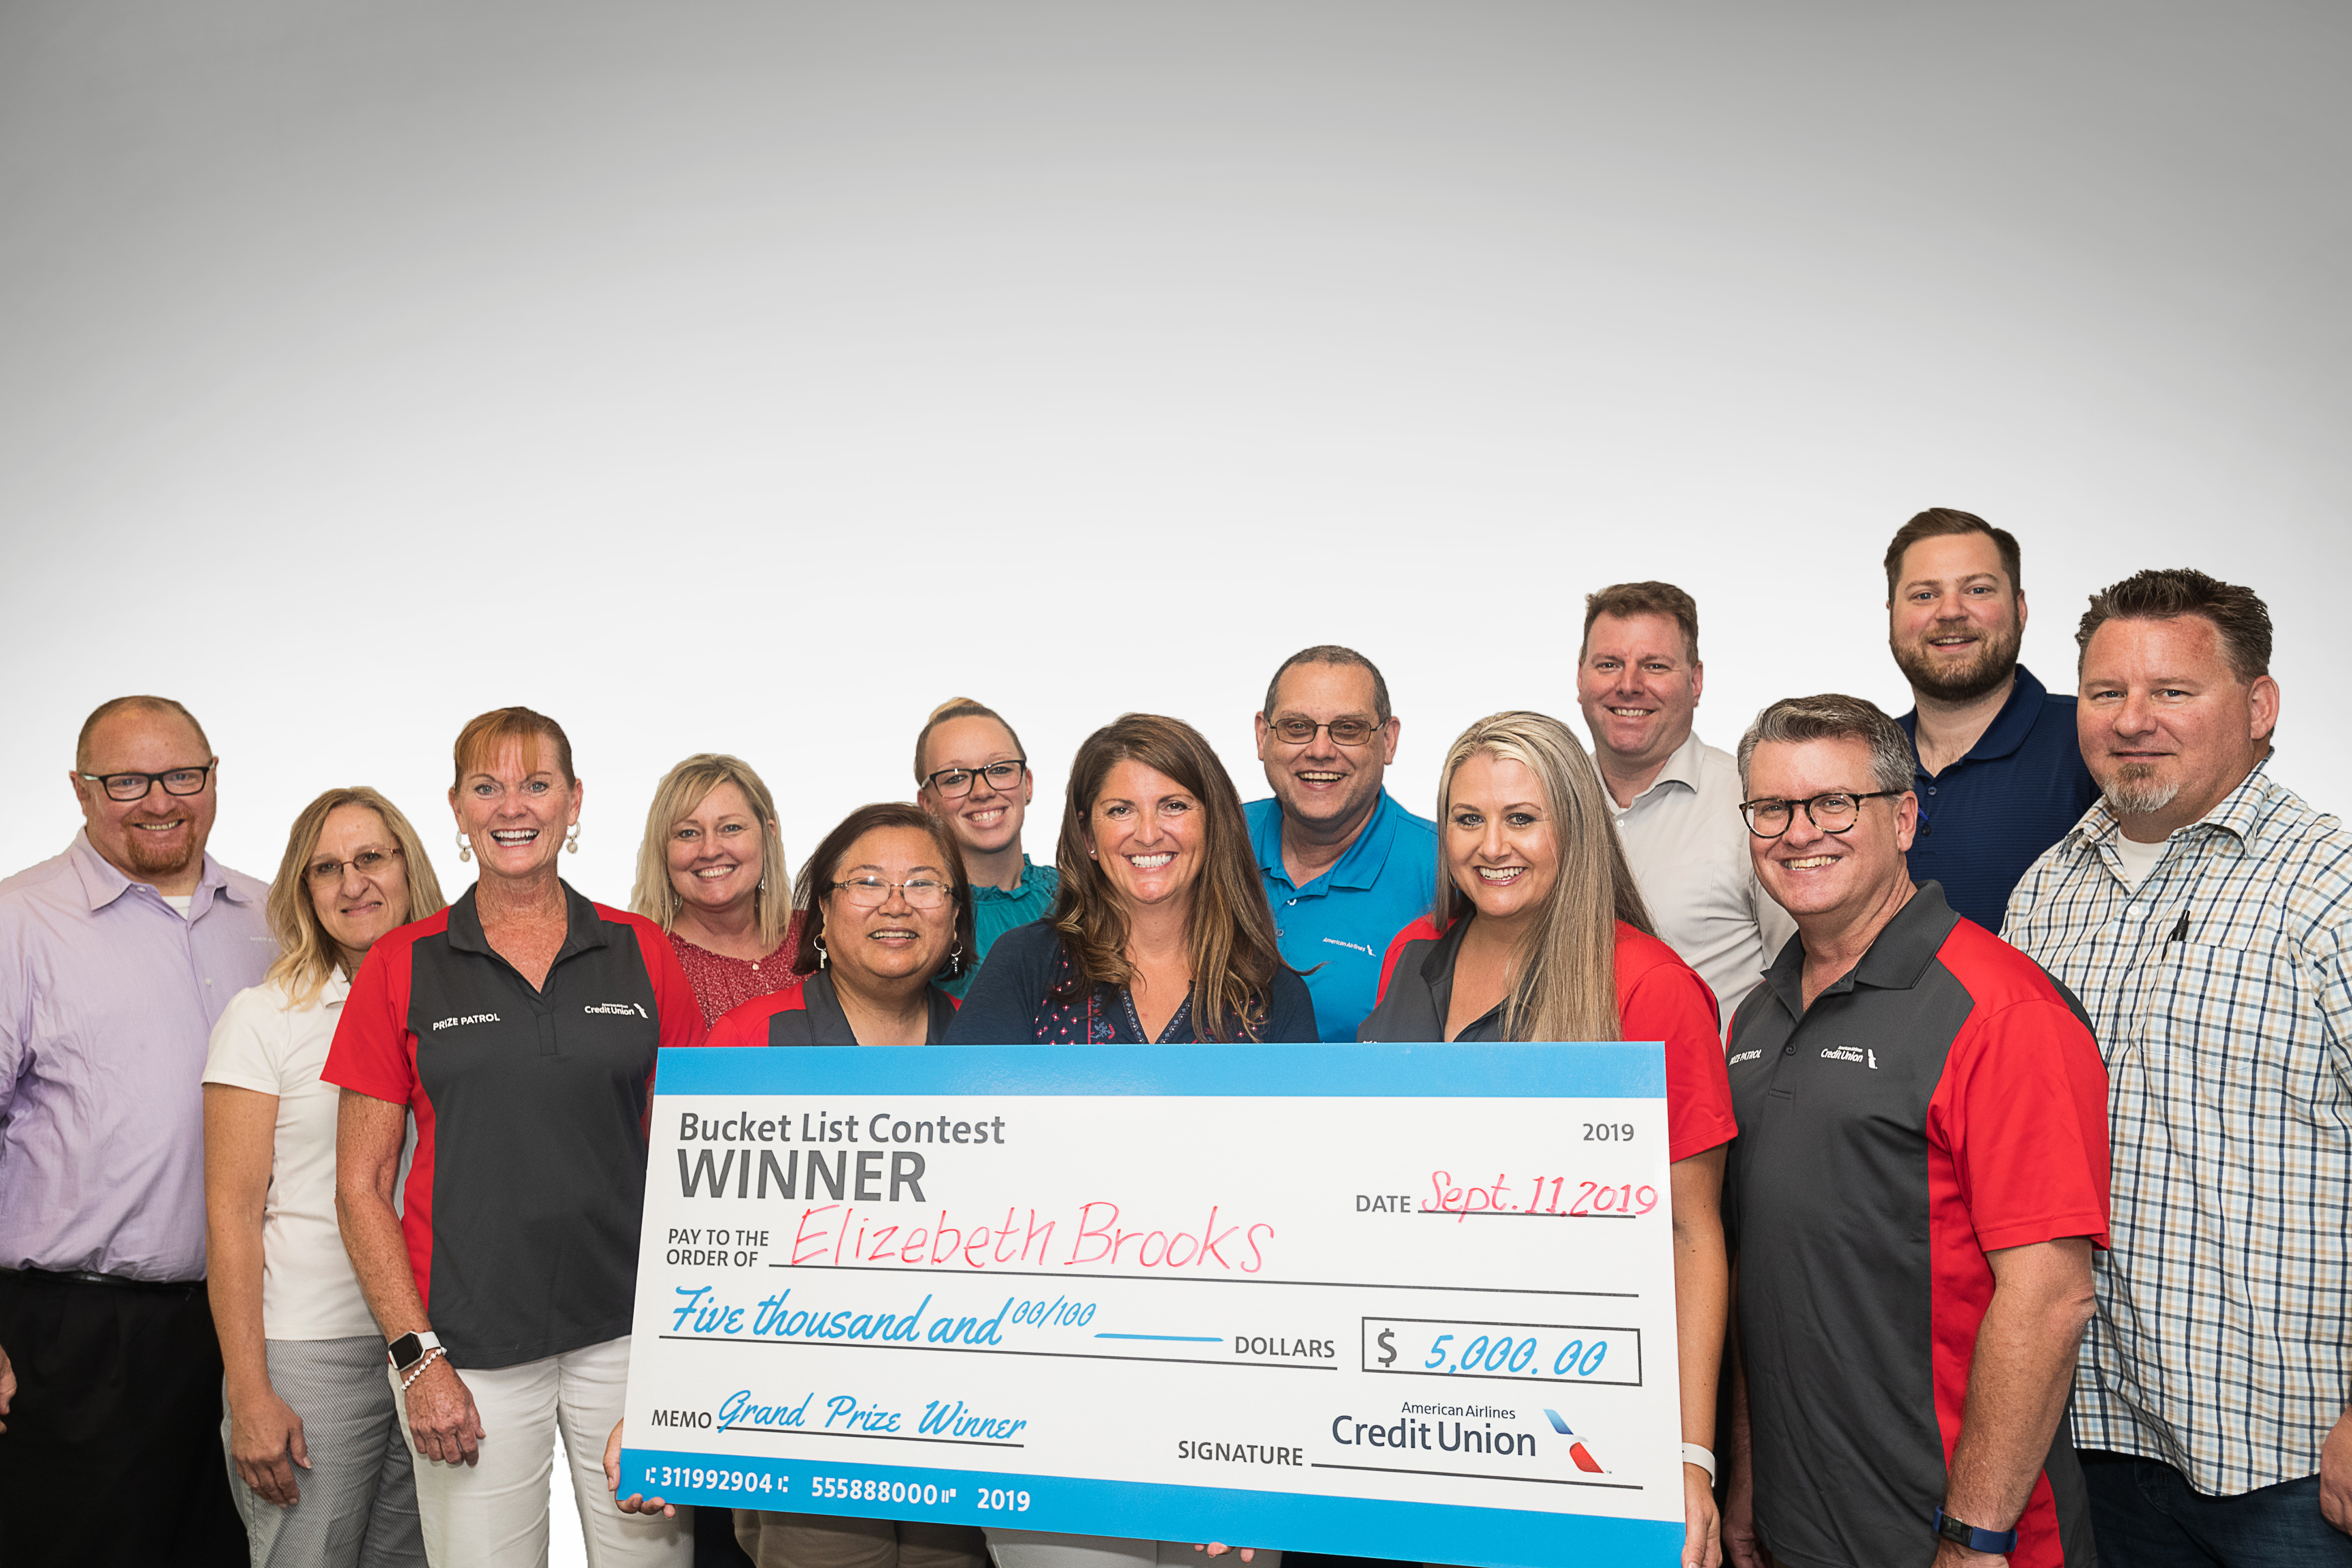 american airlines federal credit union employees holding big check with winner